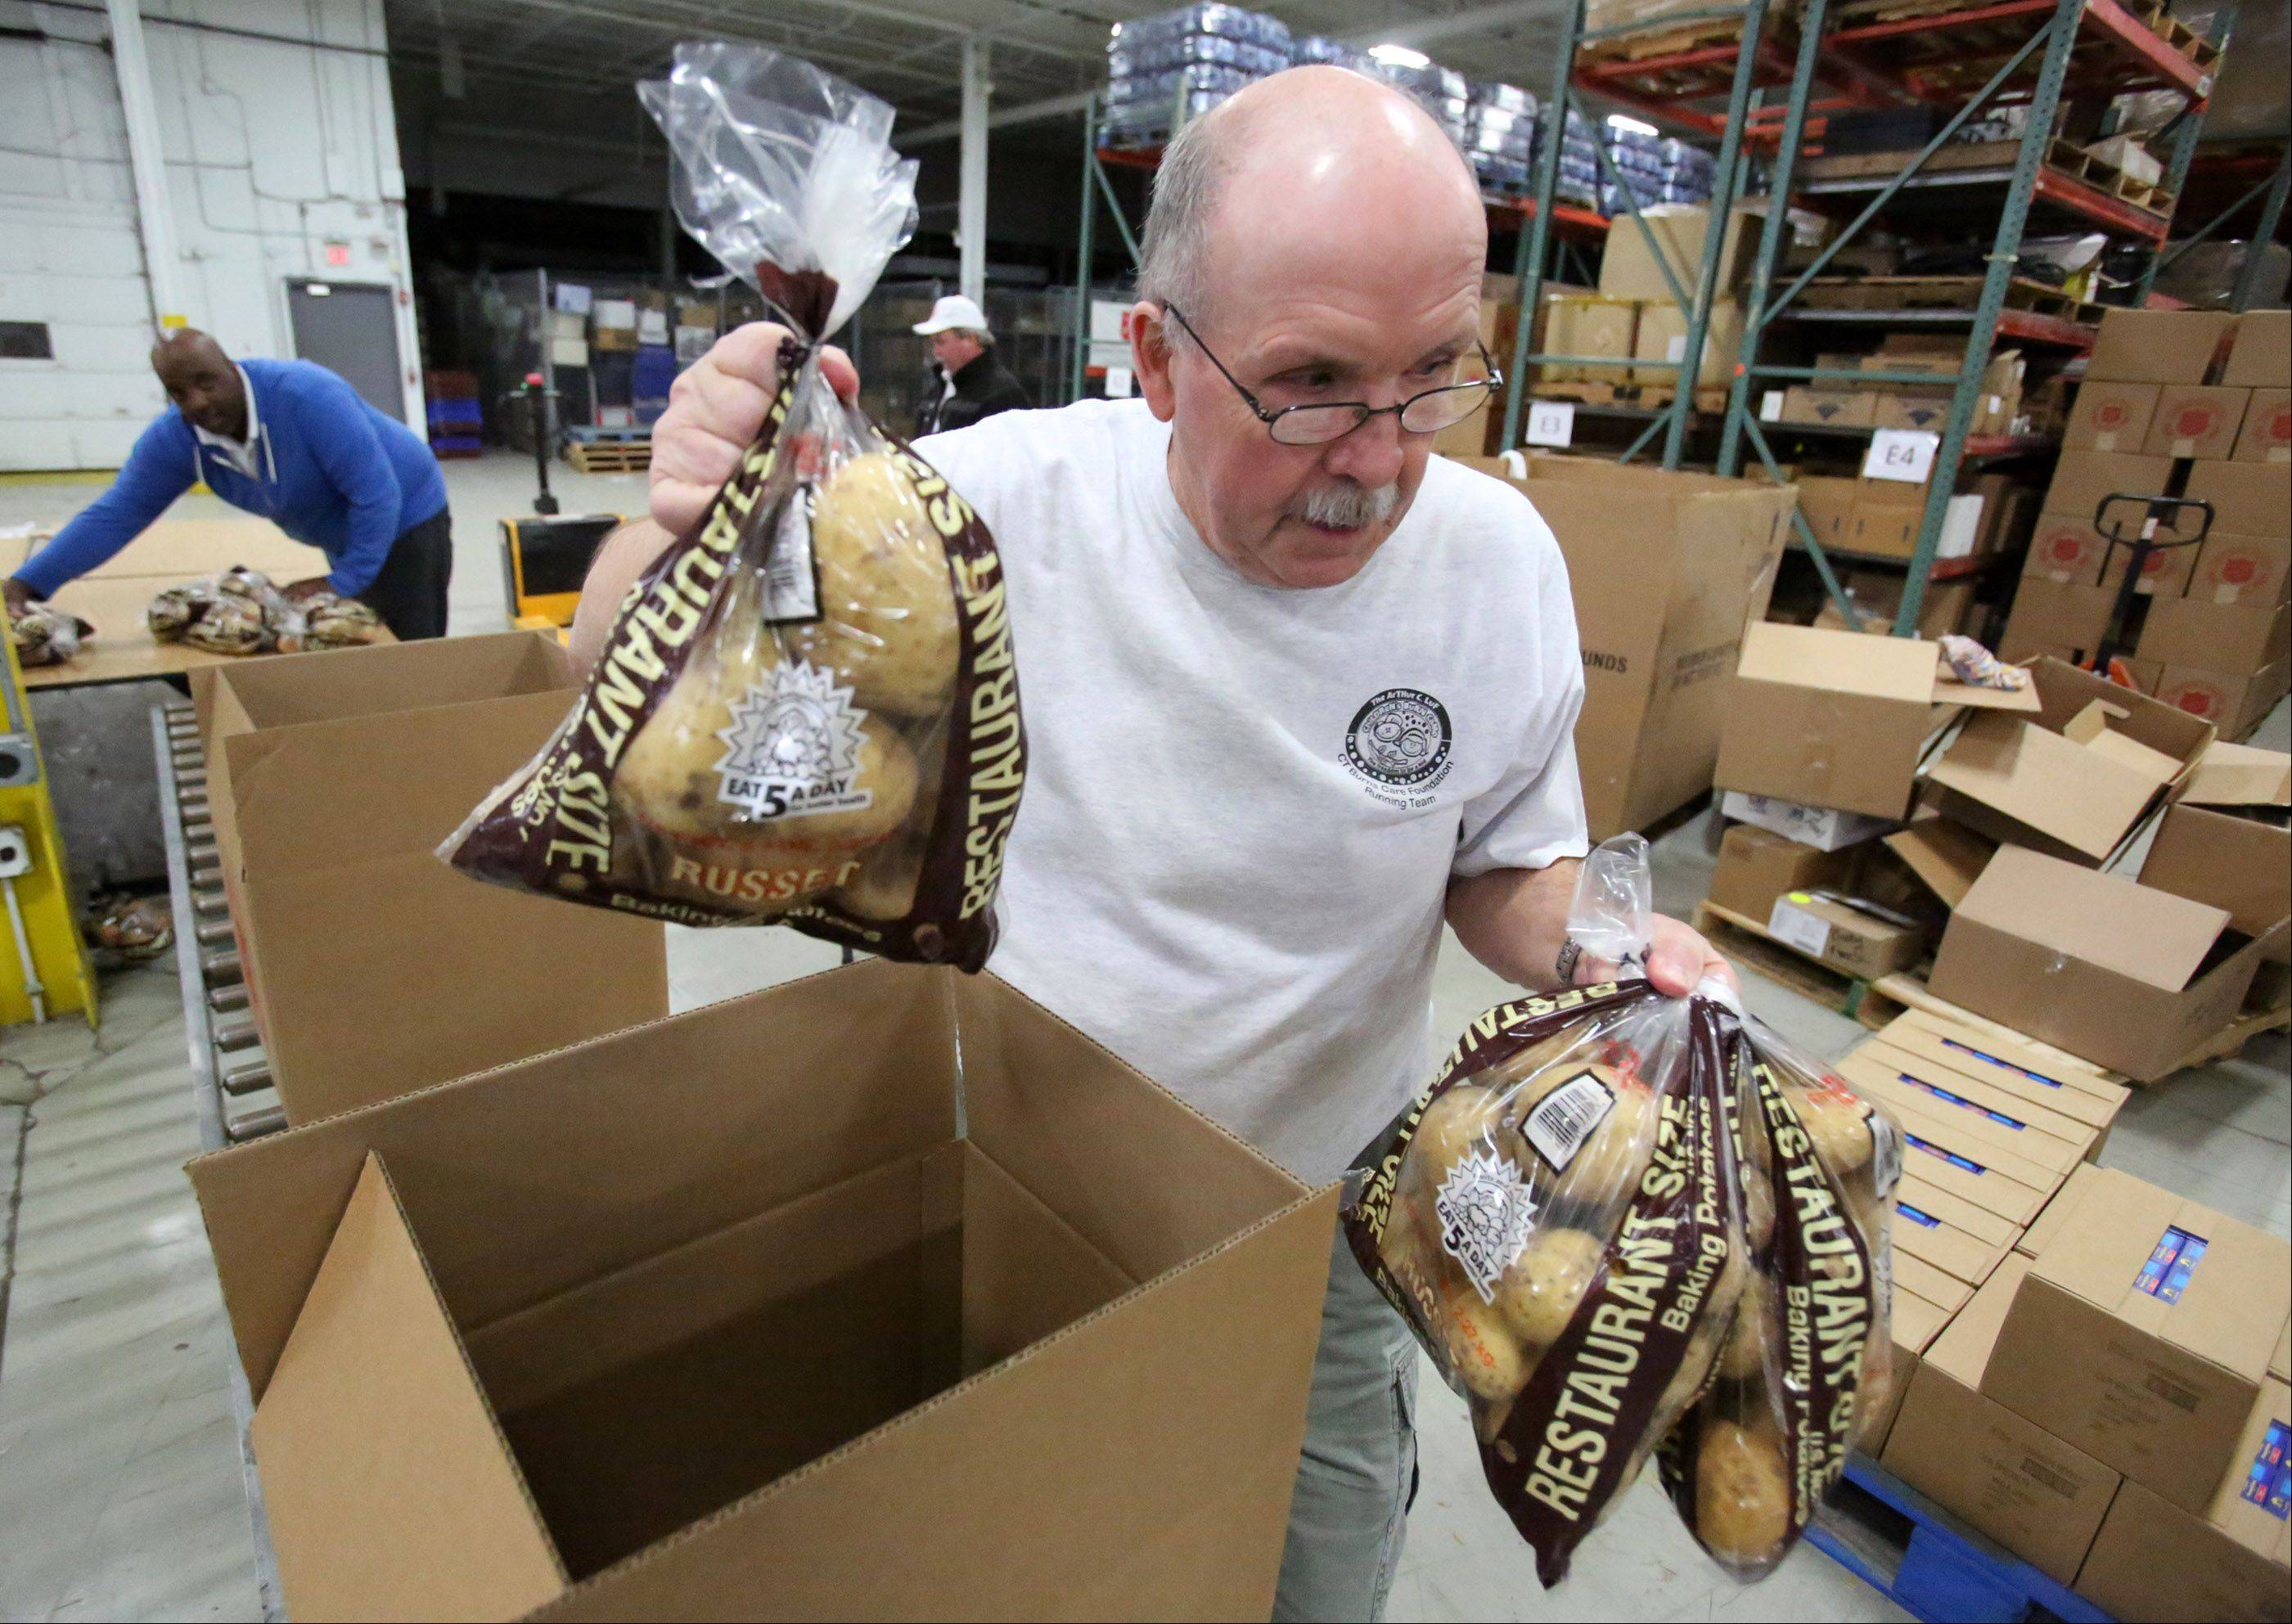 Volunteer Larry Moe of Elk Grove Village packs potatoes into food boxes Wednesday, part of an effort to prepare more than 10,000 Christmas Christmas food boxes containing fresh potatoes, corn, green beans, cranberry sauce, yams, gravy and stuffing at the Salvation Army�s Disaster Services Headquarters in Elk Grove Village.